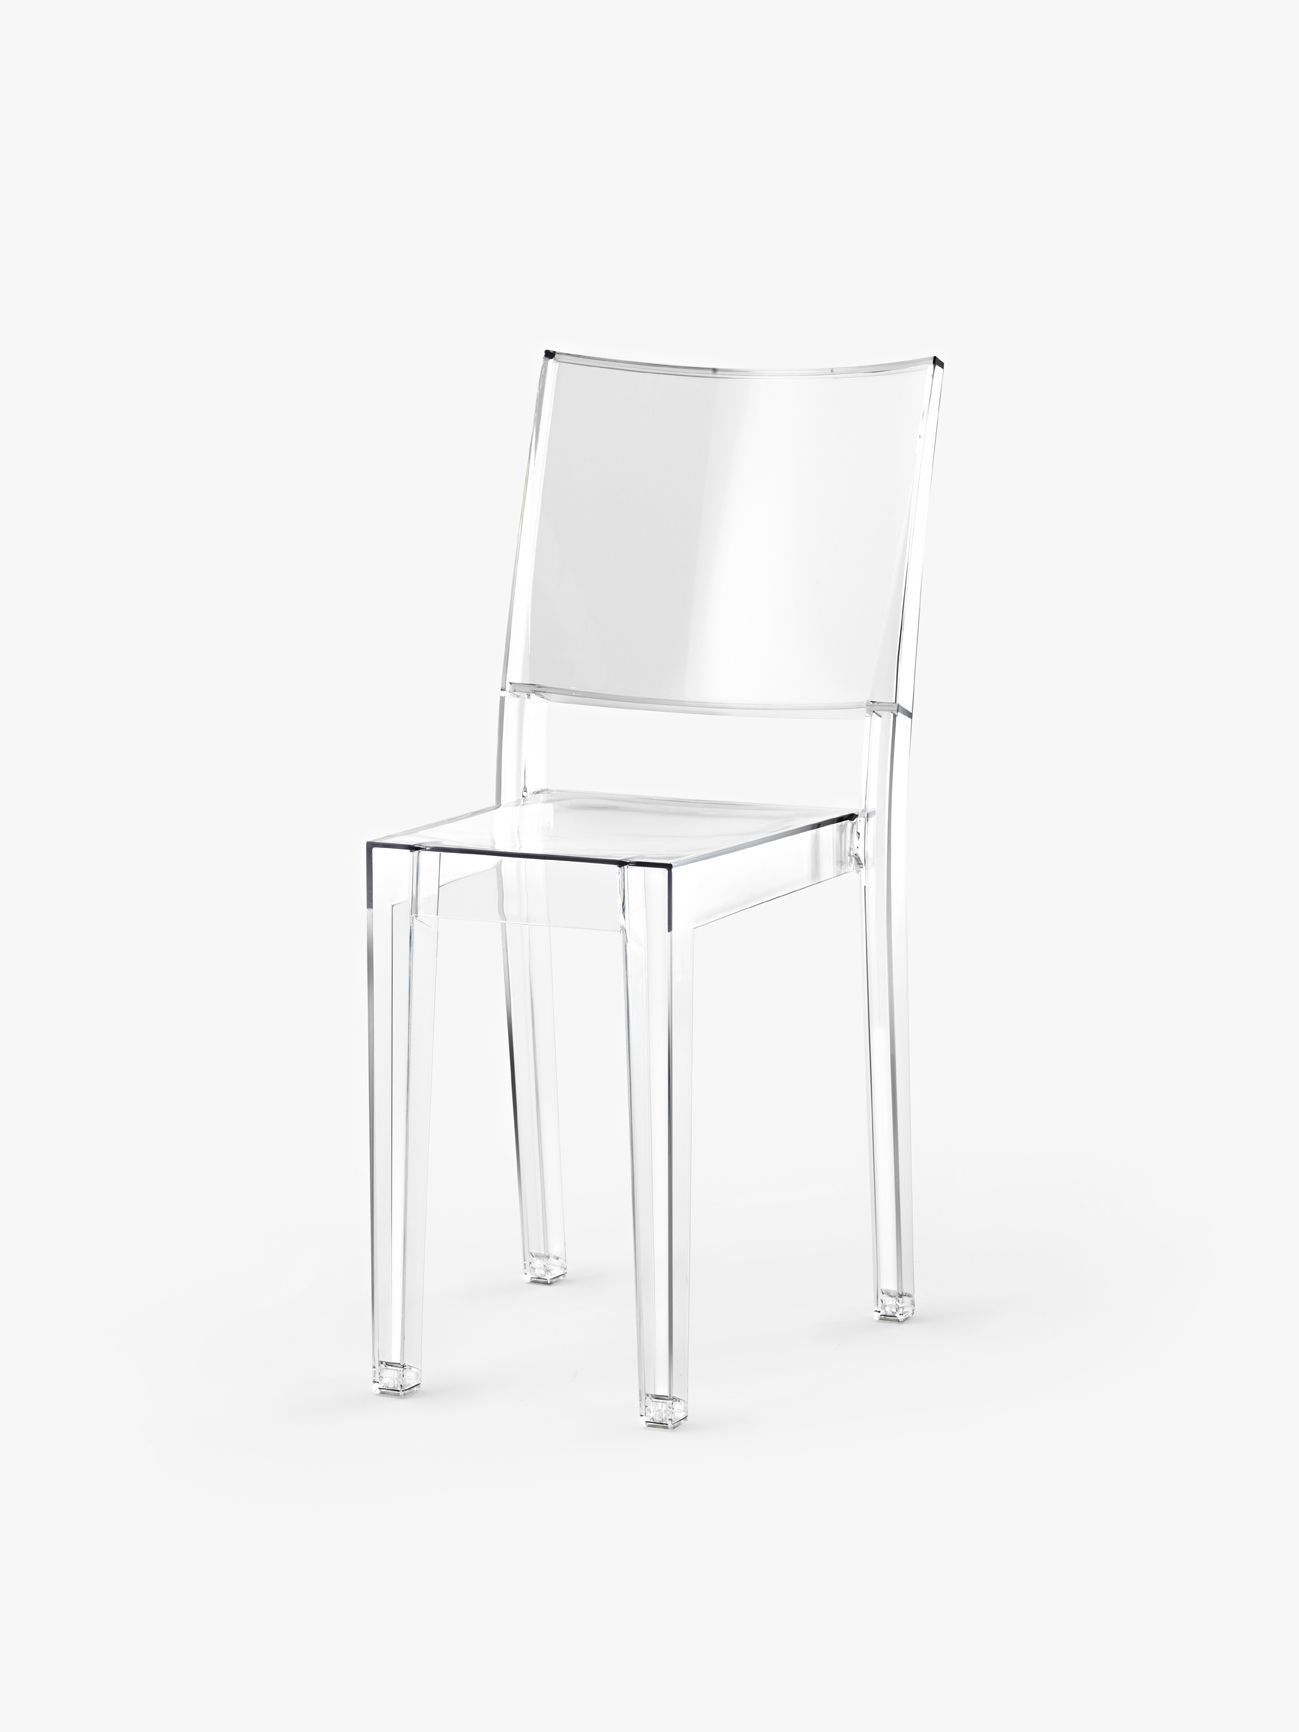 philippe starck la marie the world s first completely transparent chair made from a single. Black Bedroom Furniture Sets. Home Design Ideas